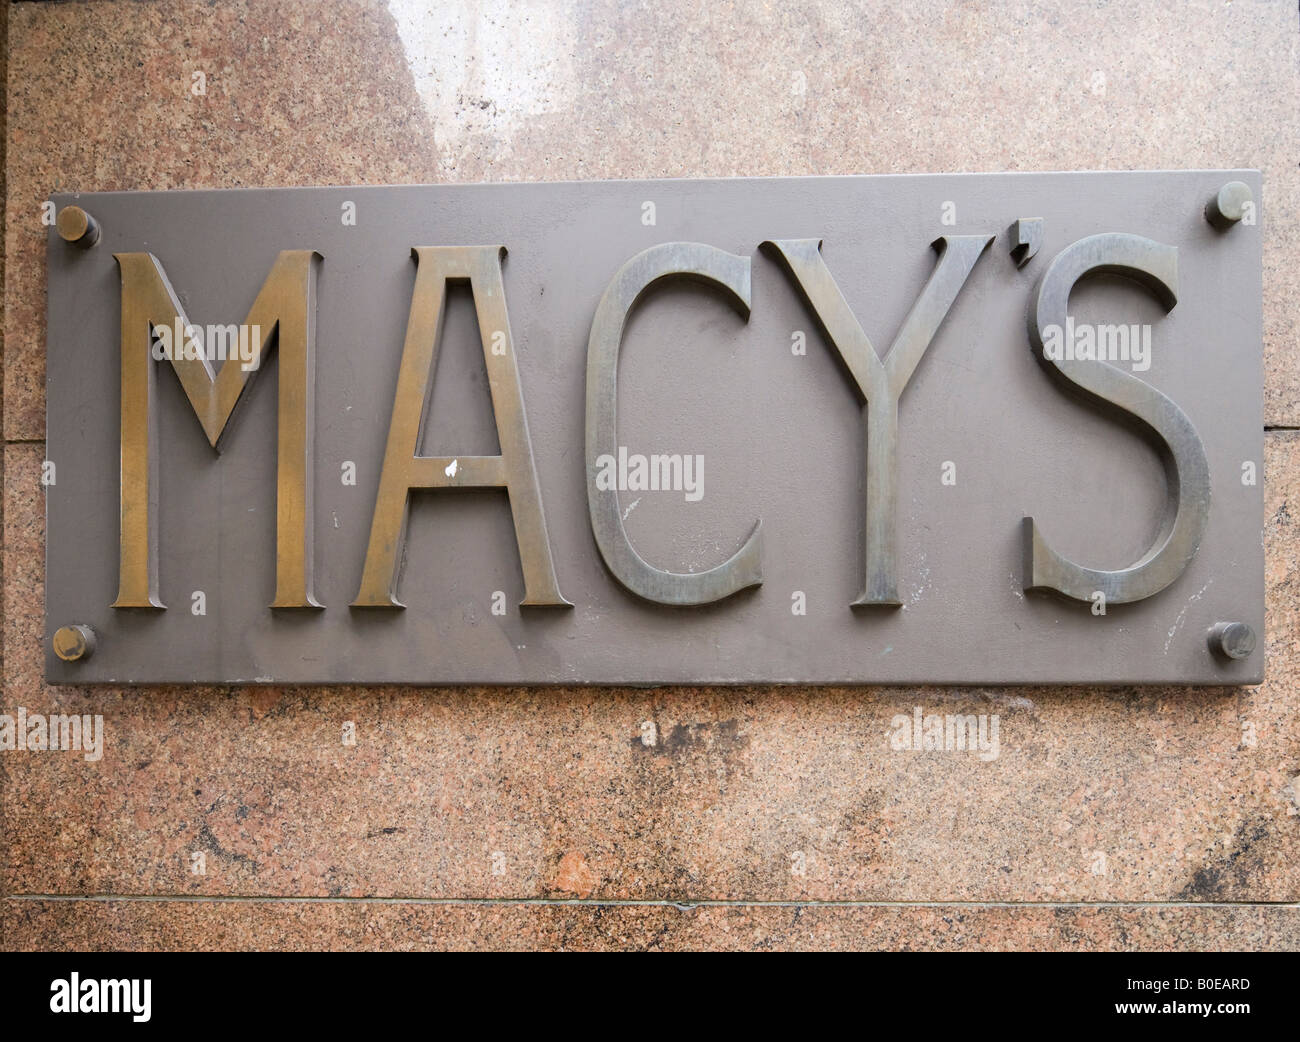 Shopping New York Macys Stock Photos Shopping New York Macys Stock